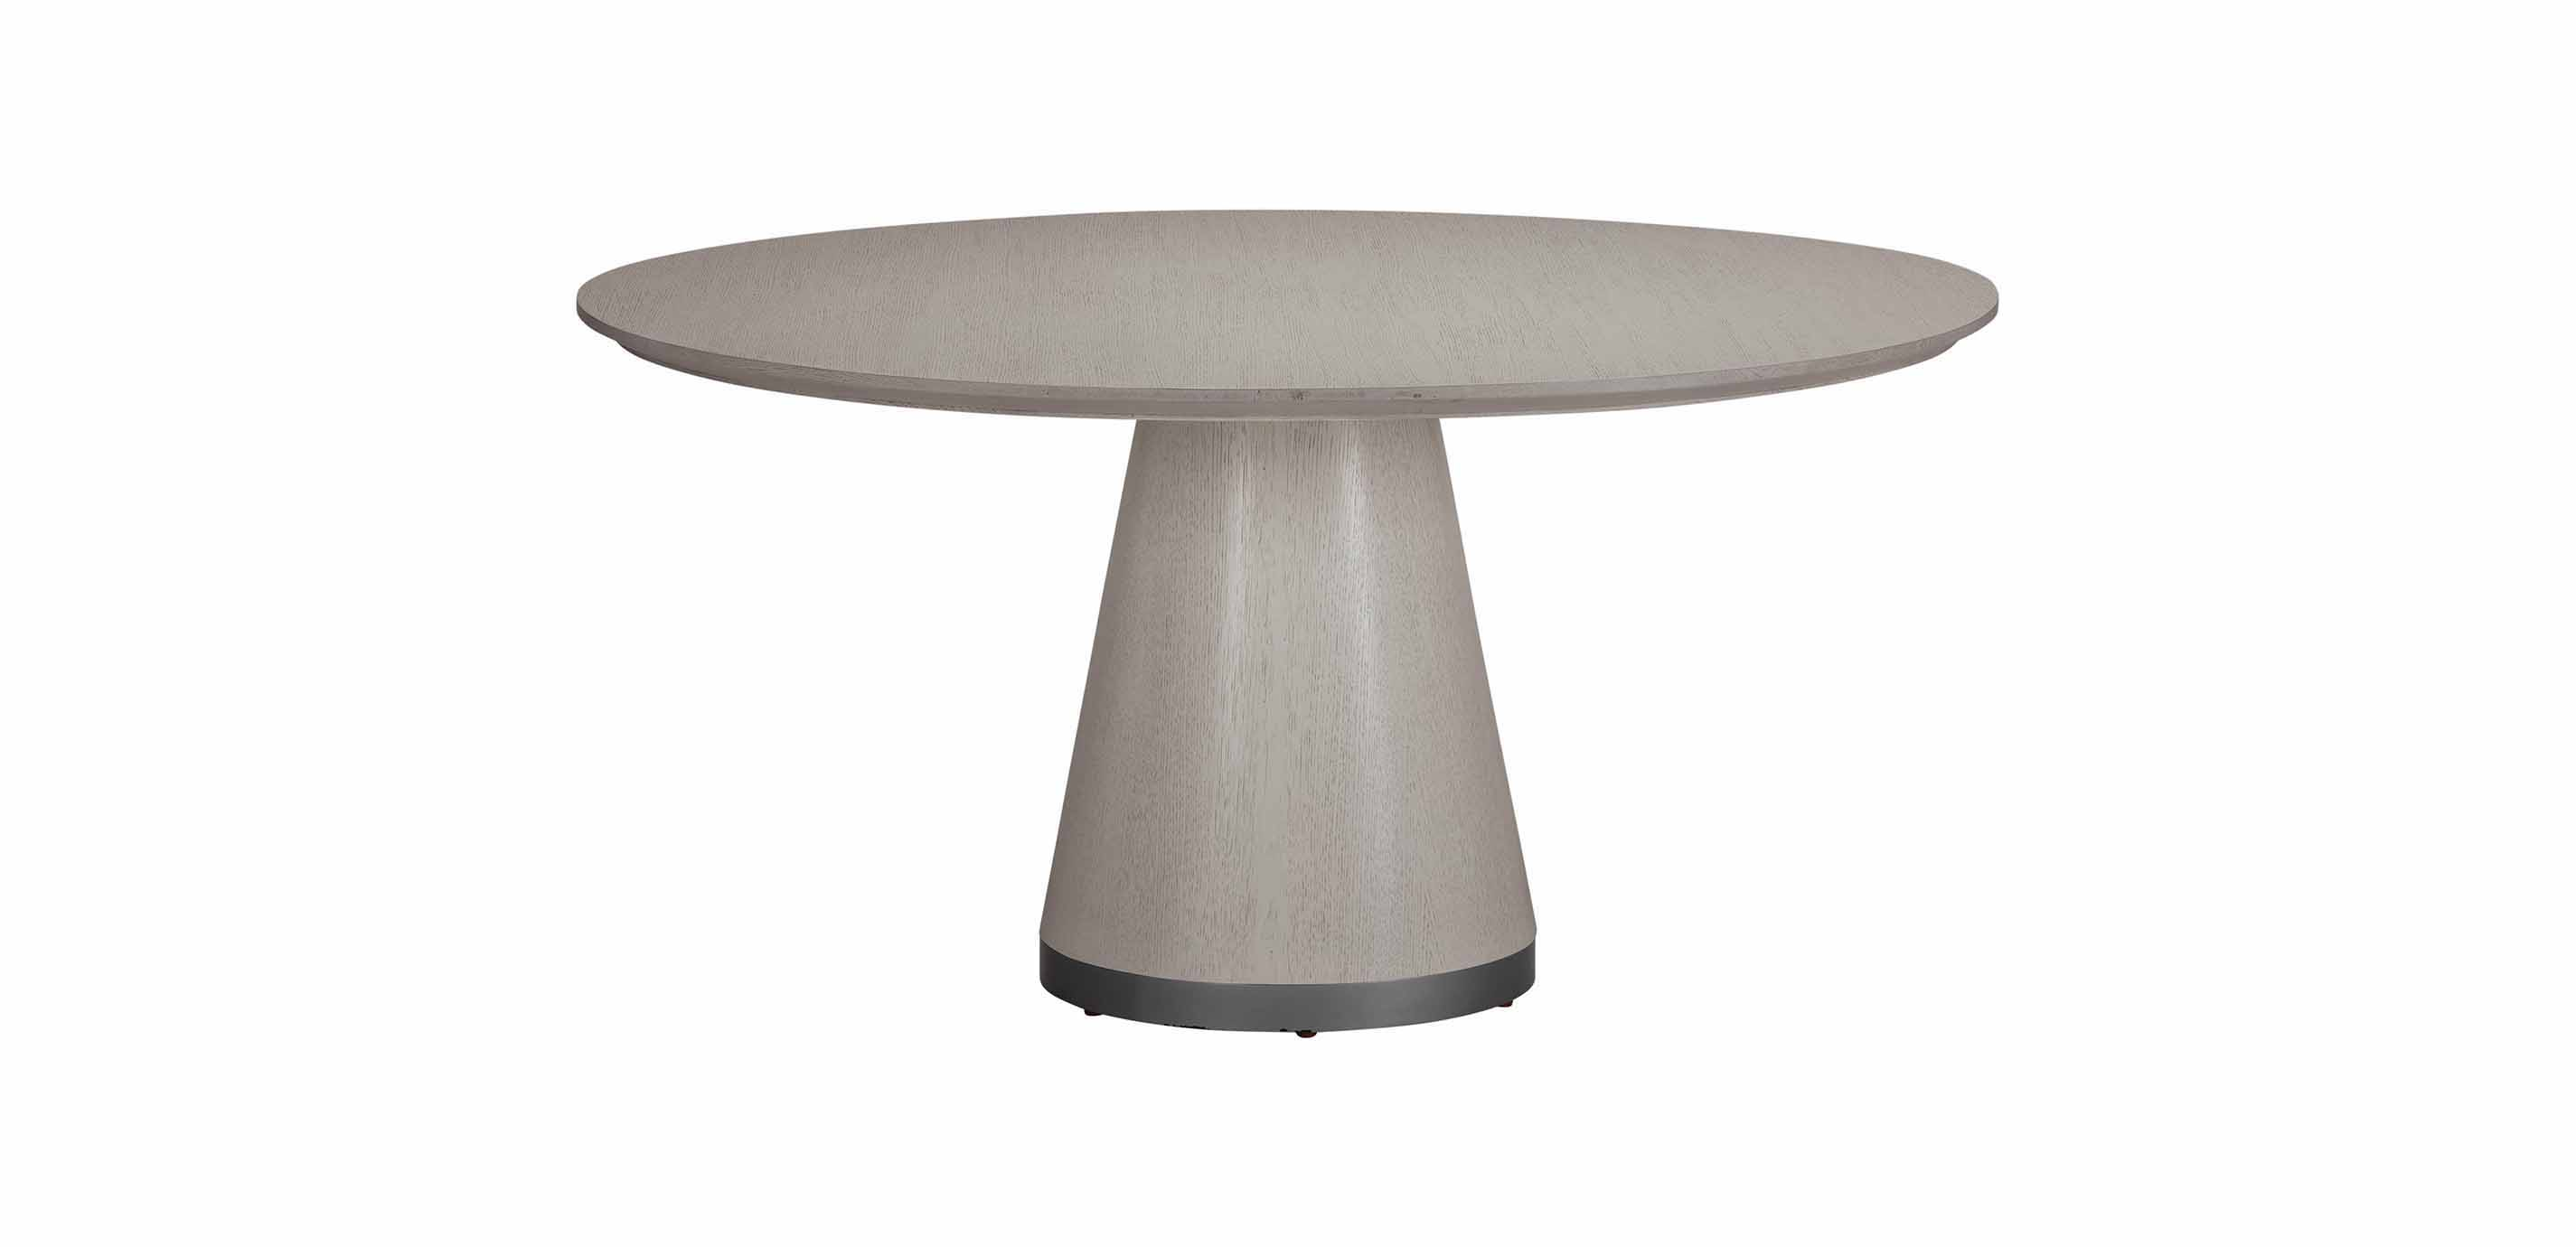 Swell Gracedale Round Dining Table Oak Dining Table Ethan Allen Interior Design Ideas Philsoteloinfo